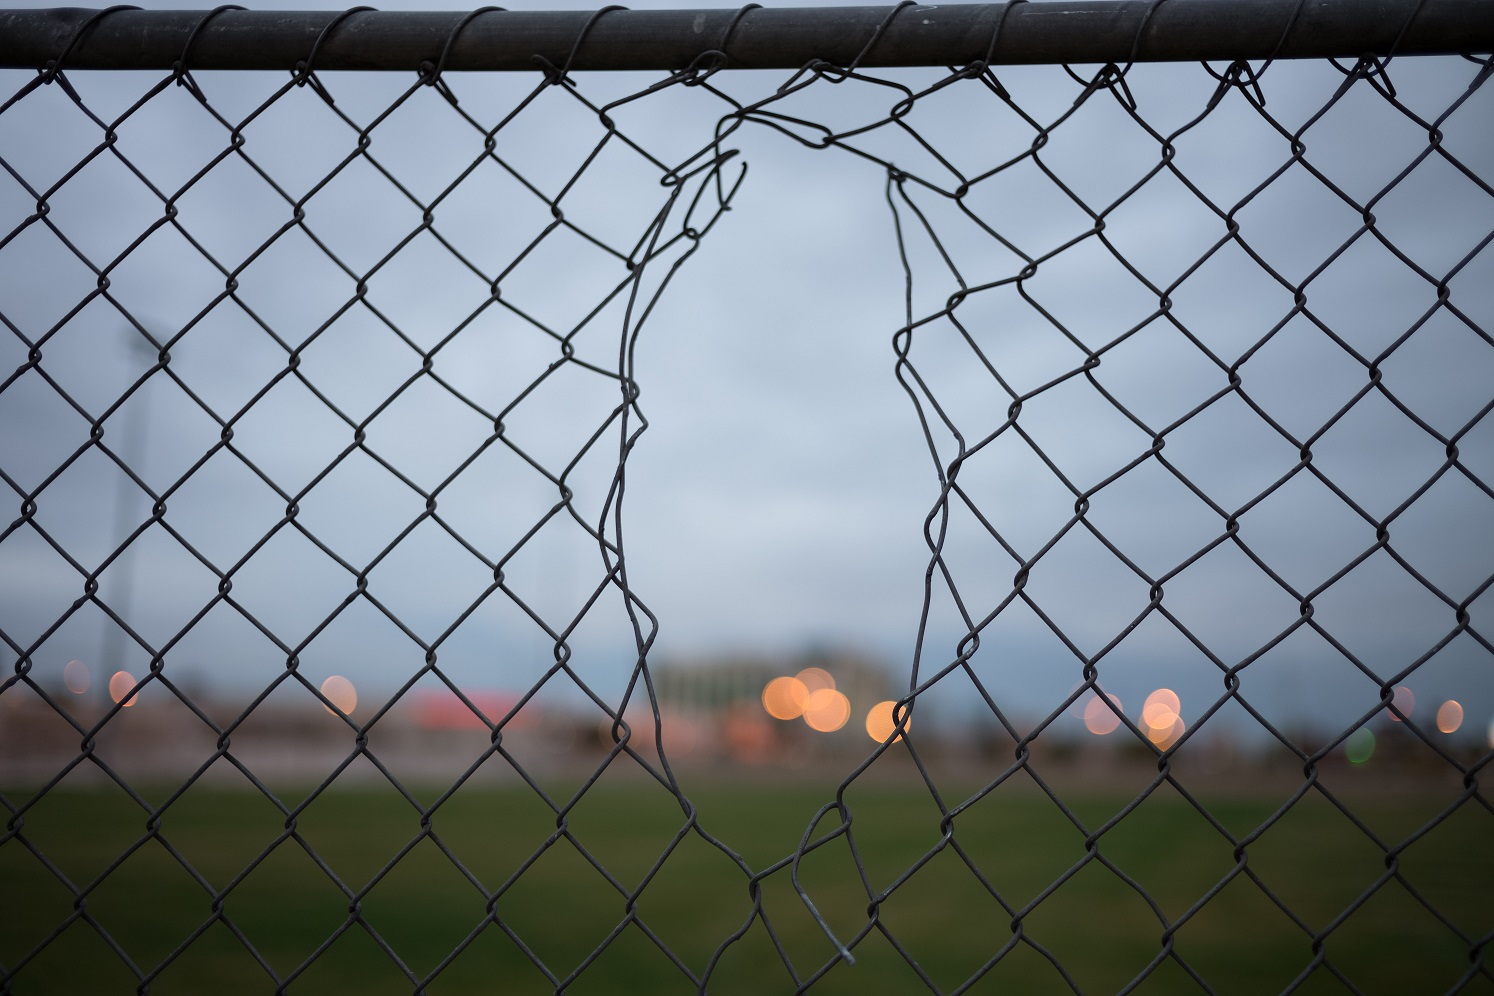 An image showing a large hole in a perimeter fence